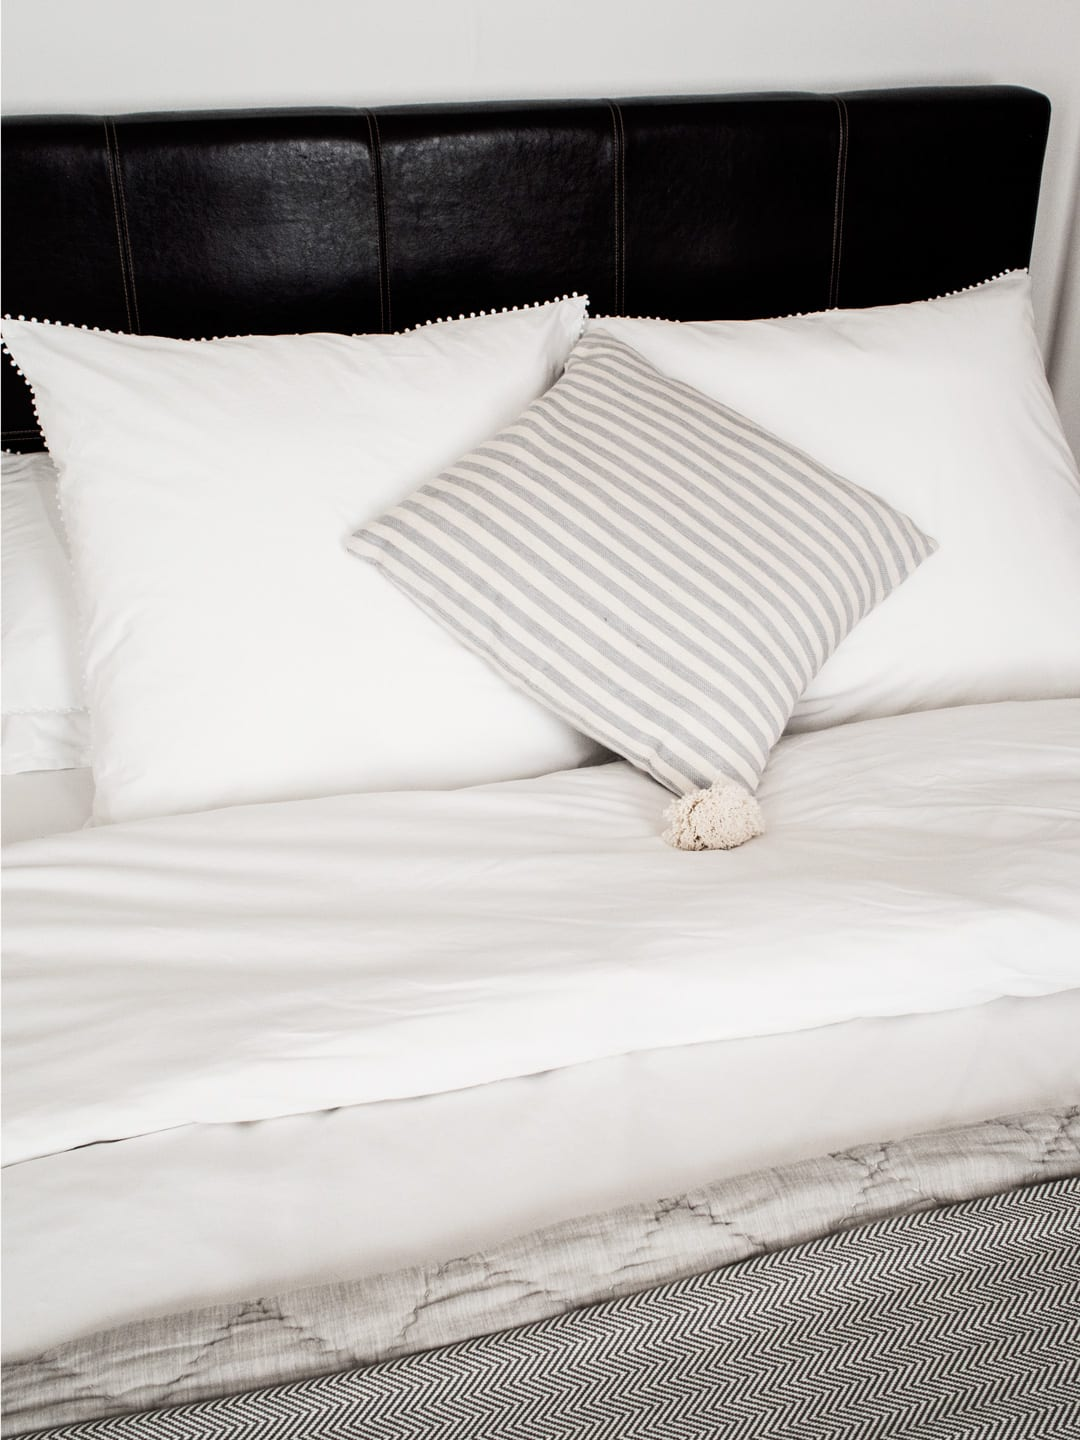 My Luxury Bedding from The White Company, Wood/Grey & Habitat